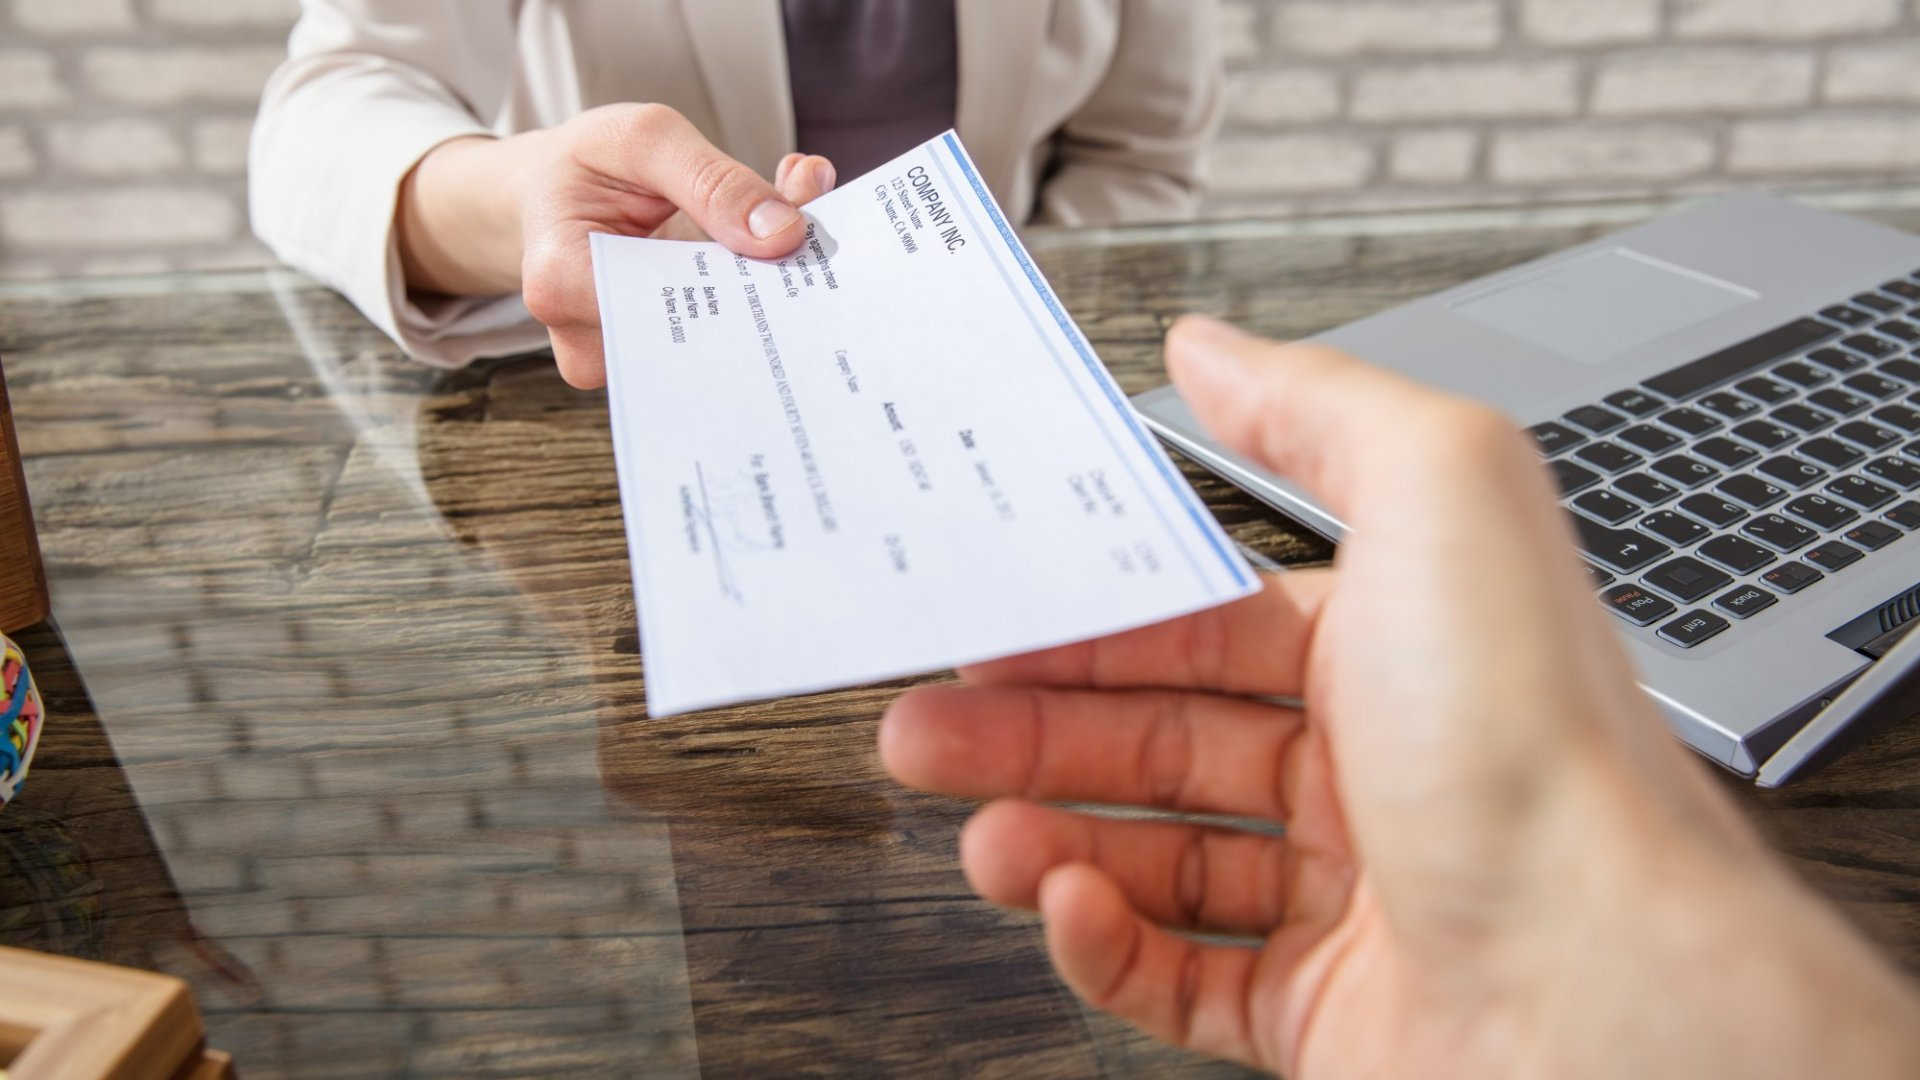 5 Common Mistakes That Can Cause Your Check to Bounce